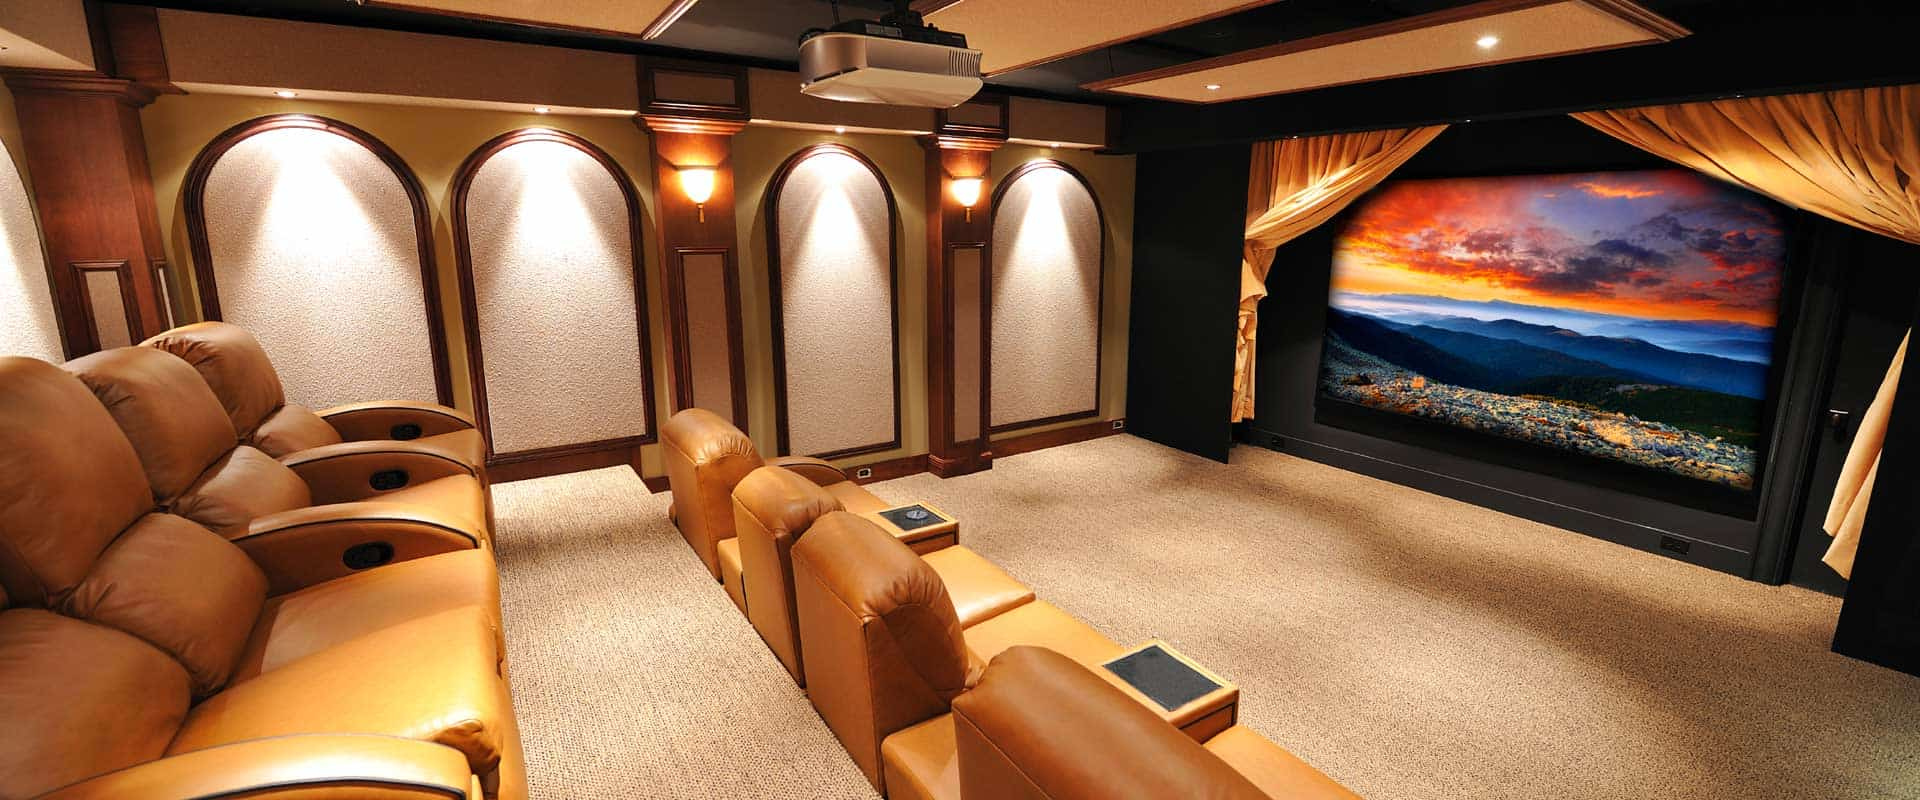 Home theater systems lutron lighting whole house audio nyc - Home theater sound system design ...